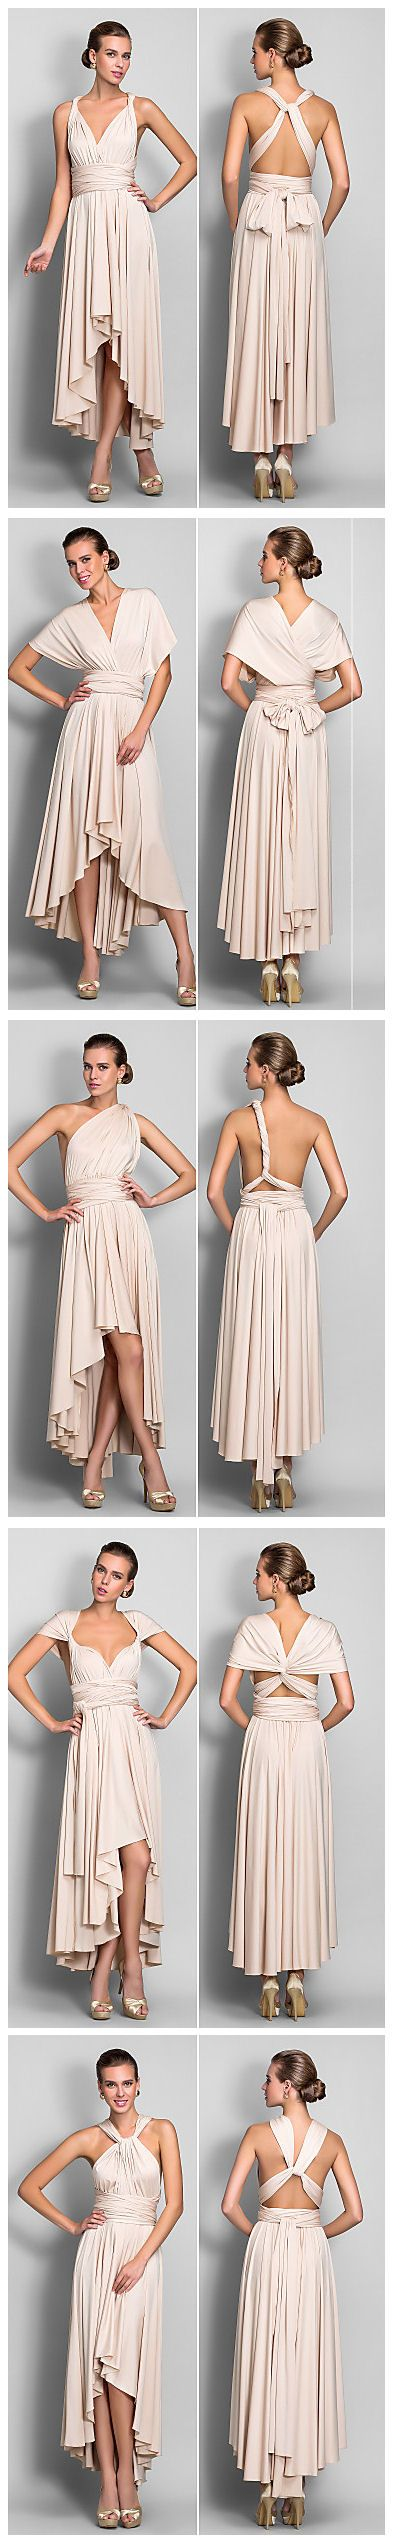 Infinity dresses the working bride - A Line V Neck Asymmetrical Jersey Bridesmaid Dress With Sash Ribbon Pleats By Lan Ting Bride